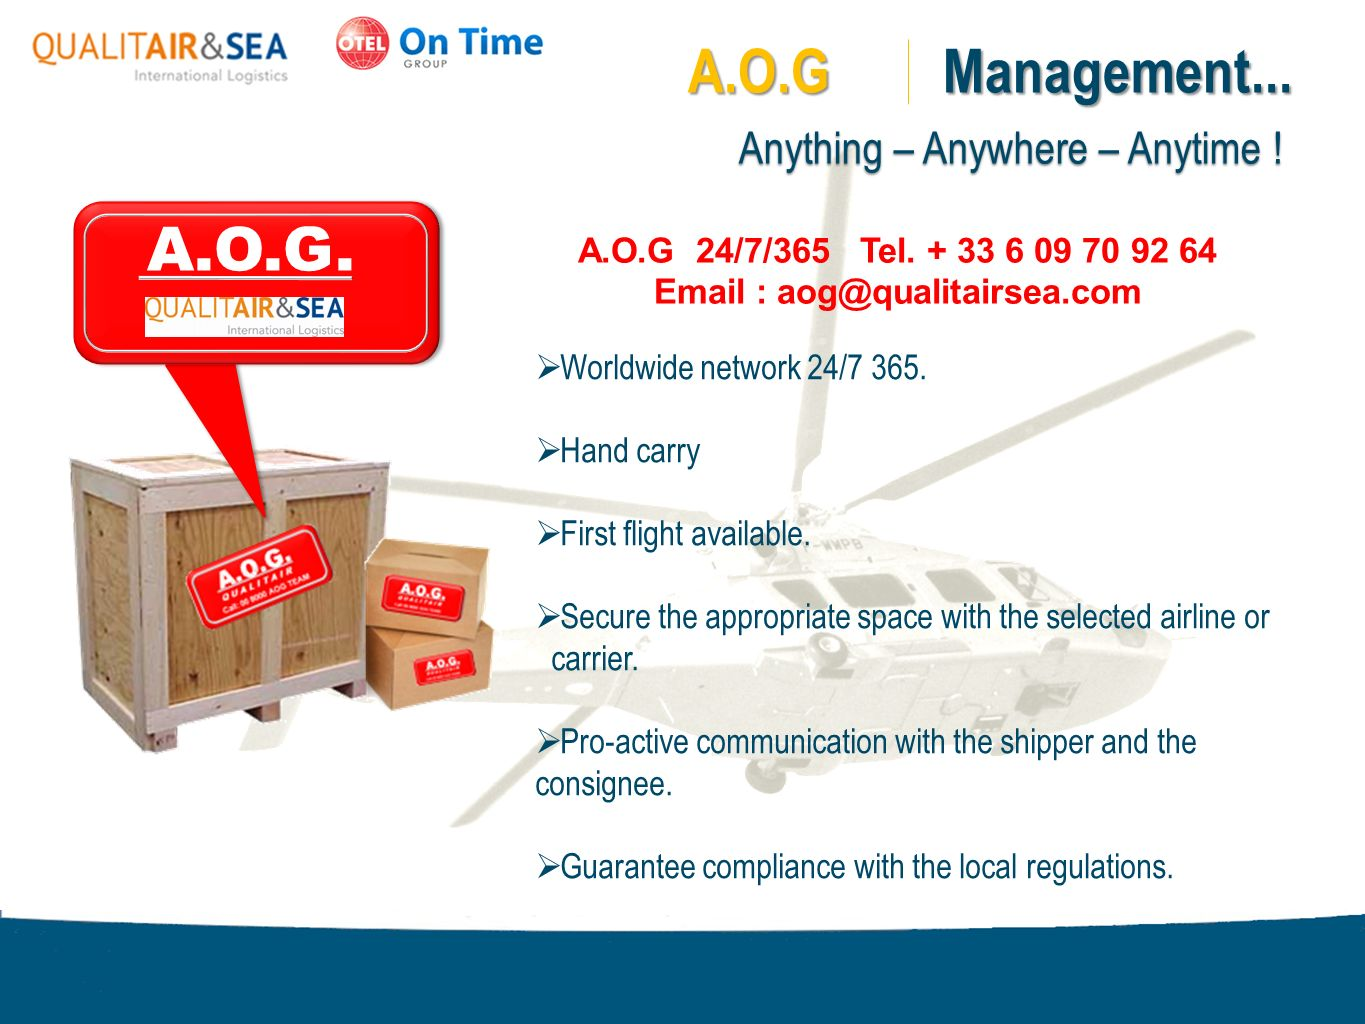 A.O.G Management... A.O.G. Anything – Anywhere – Anytime !